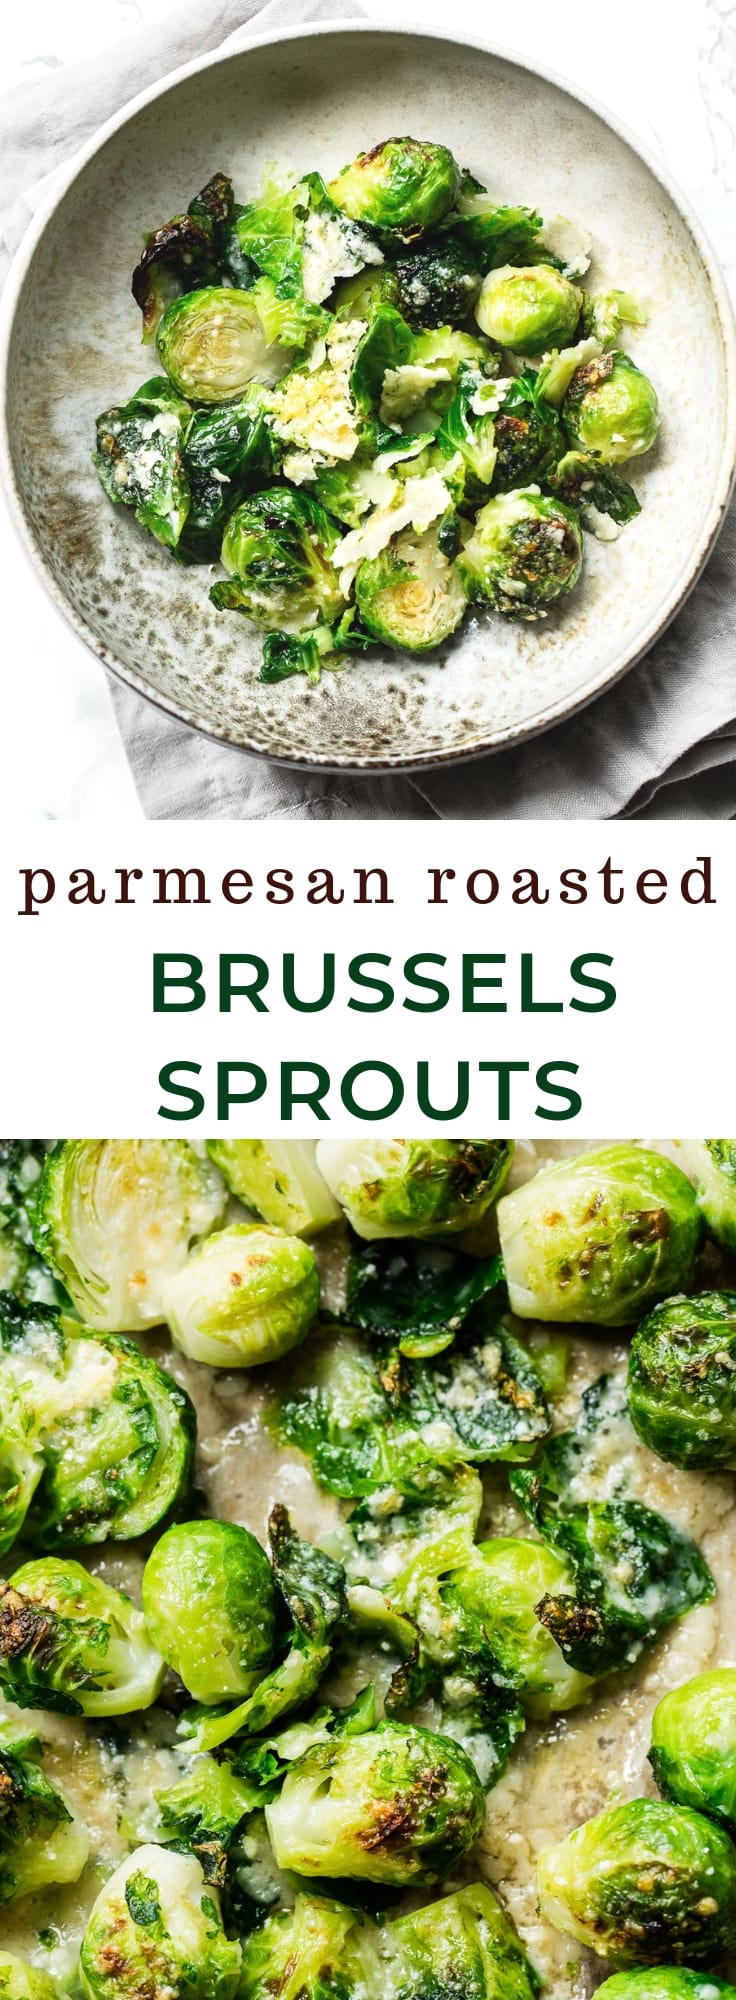 Easy Parmesan Roasted Brussels Sprouts